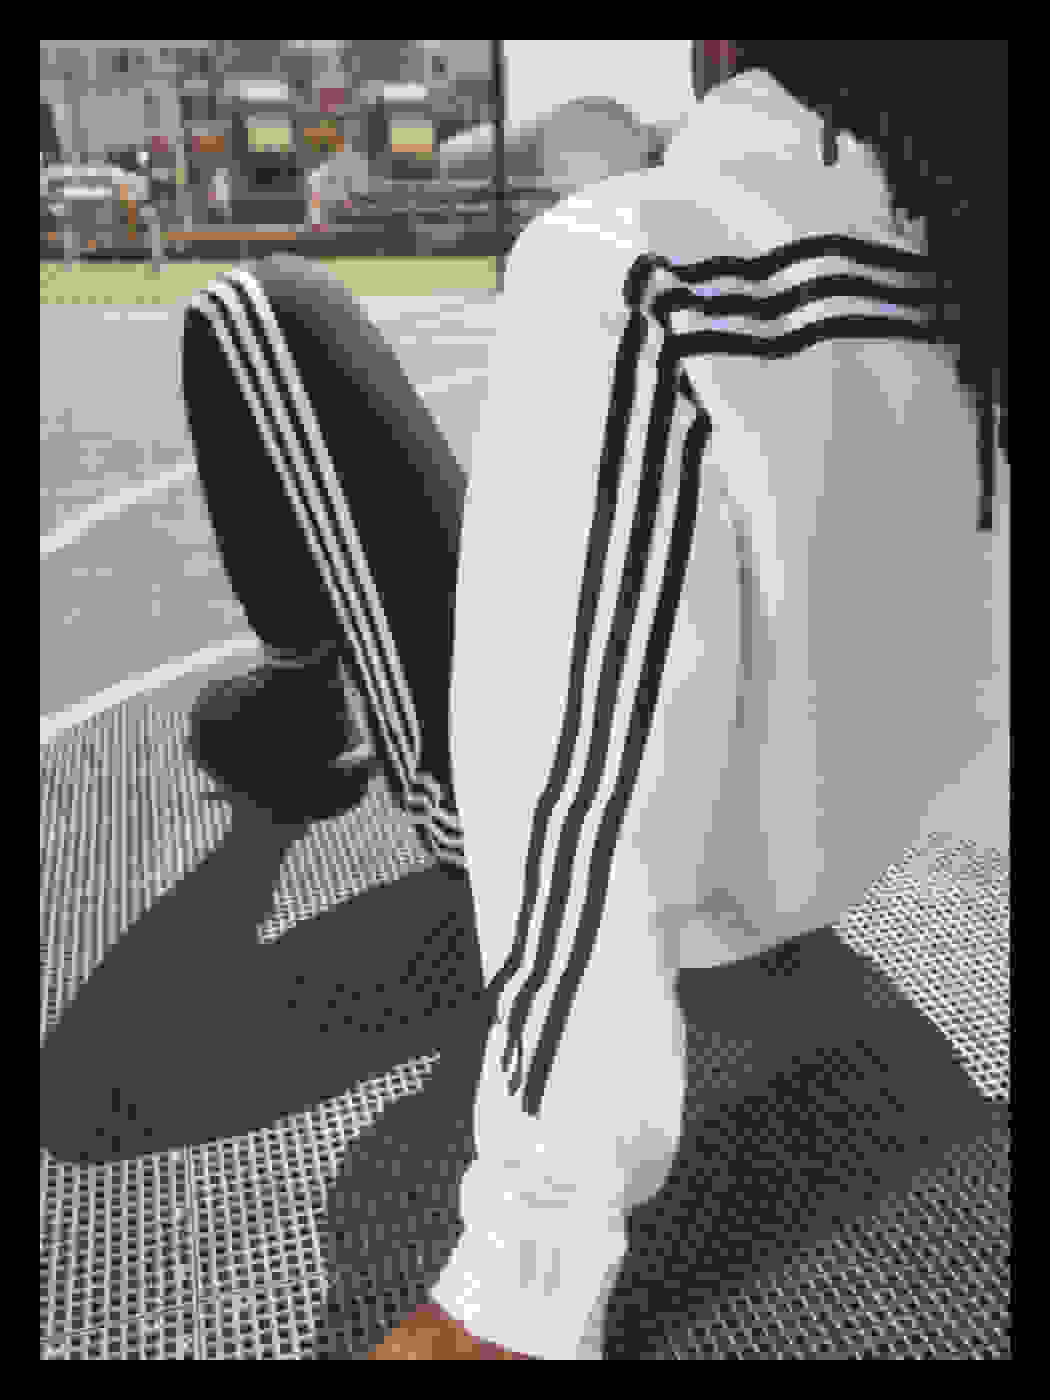 A woman sits on a basketball court, her back to the camera. She wears a white adidas top and black adidas bottoms.